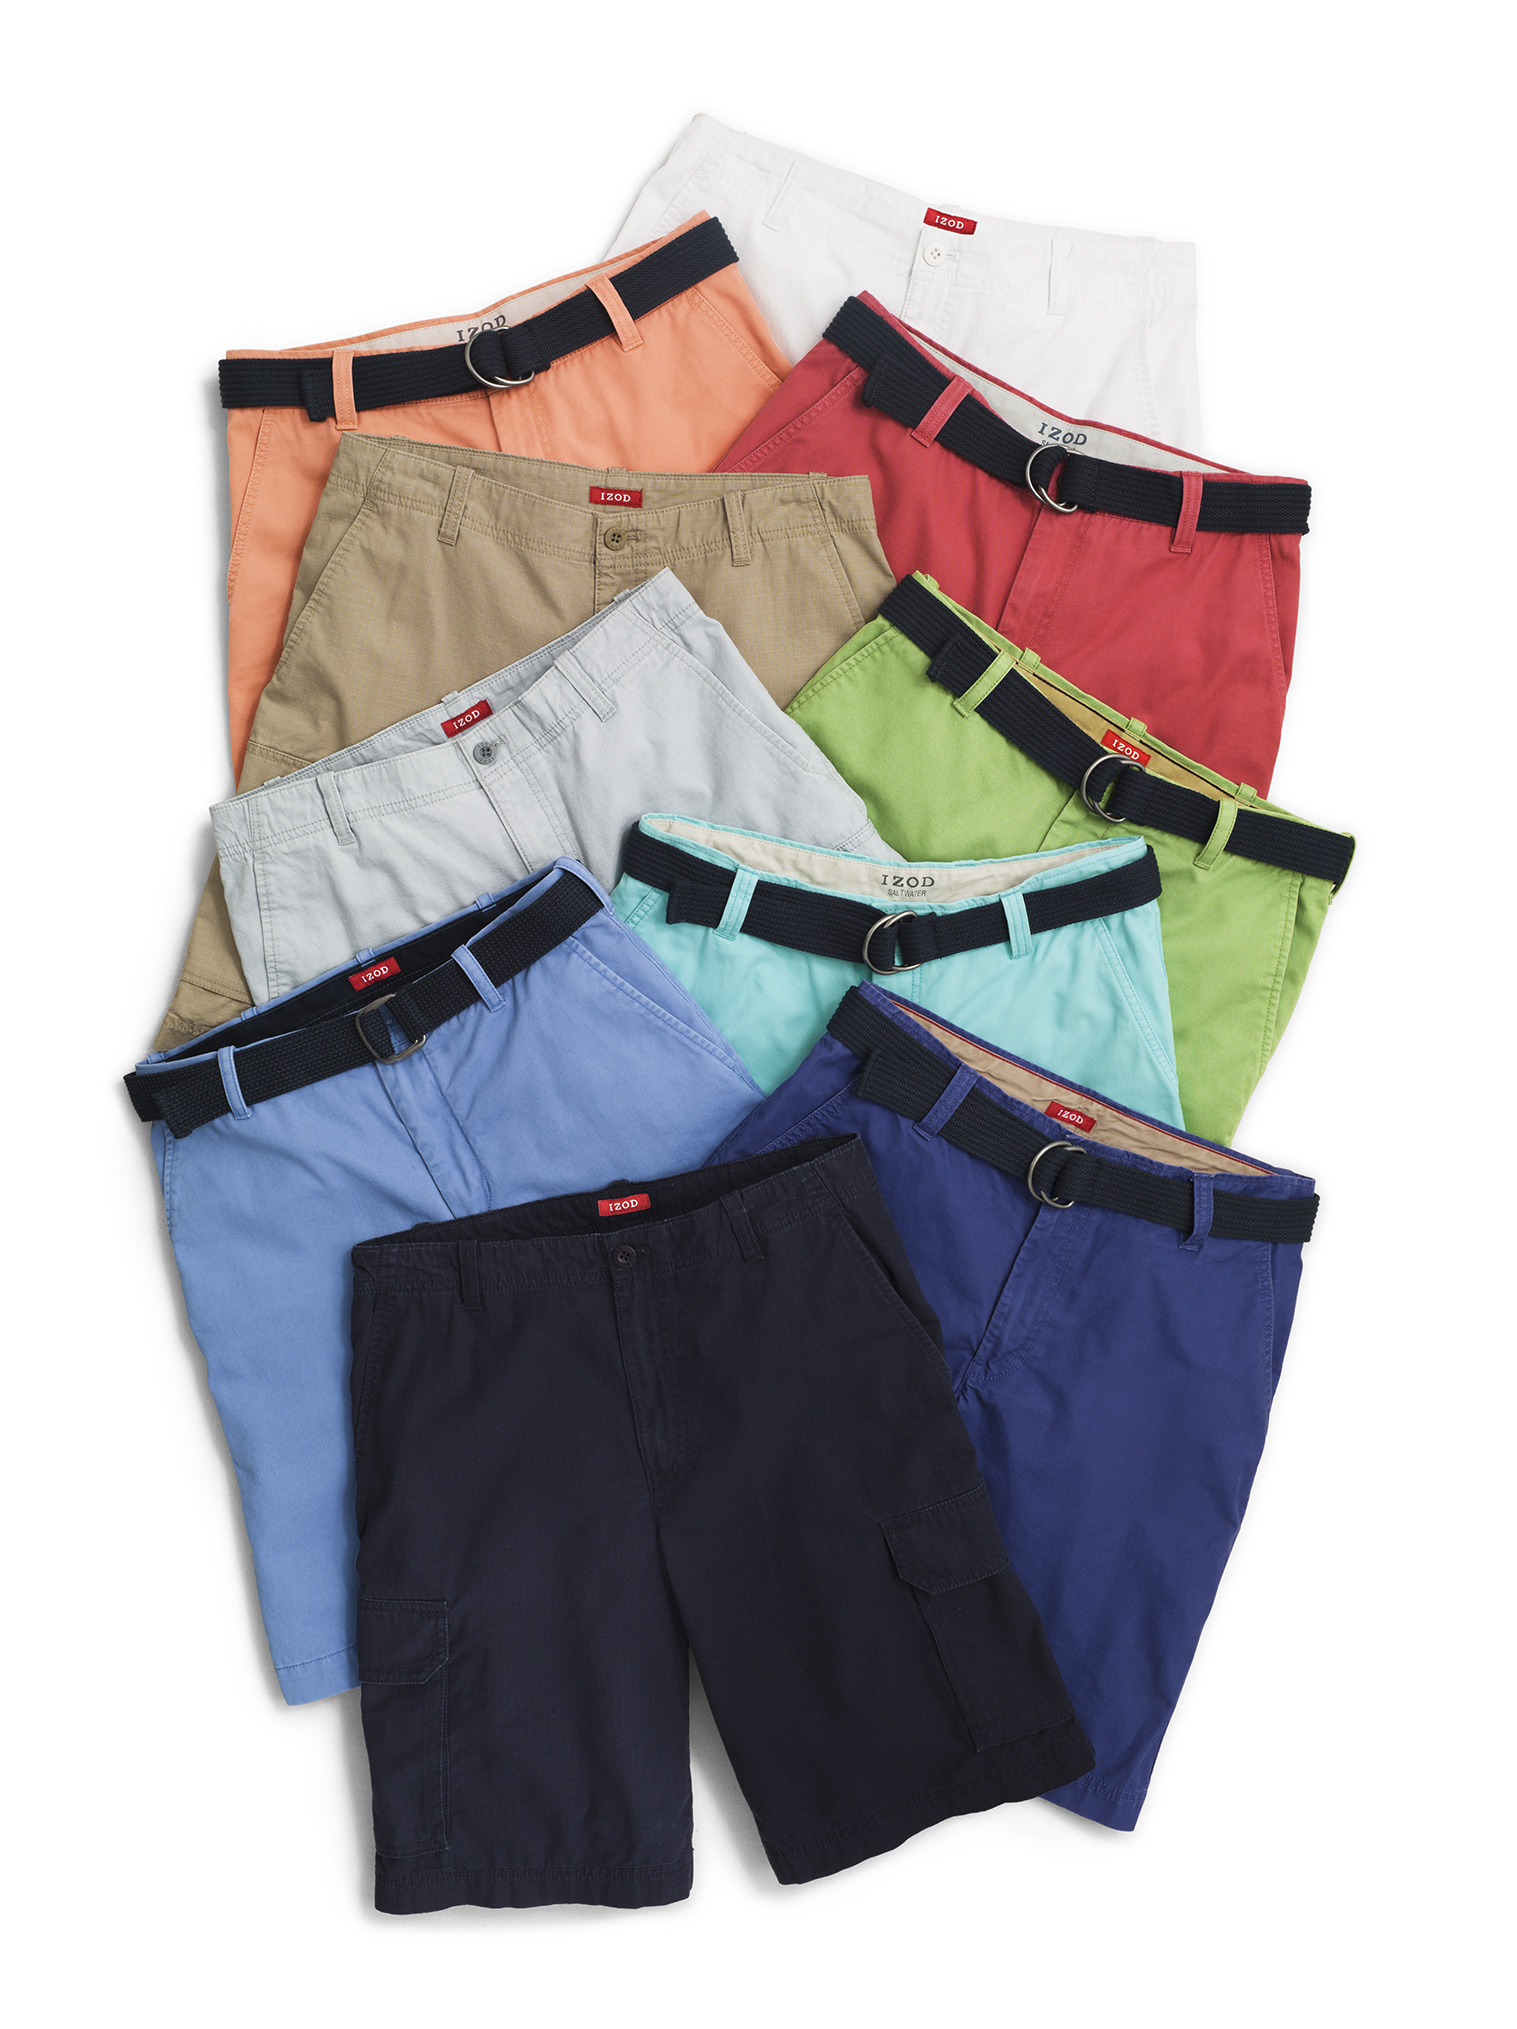 IZOD_Solid_Short_fnl copy